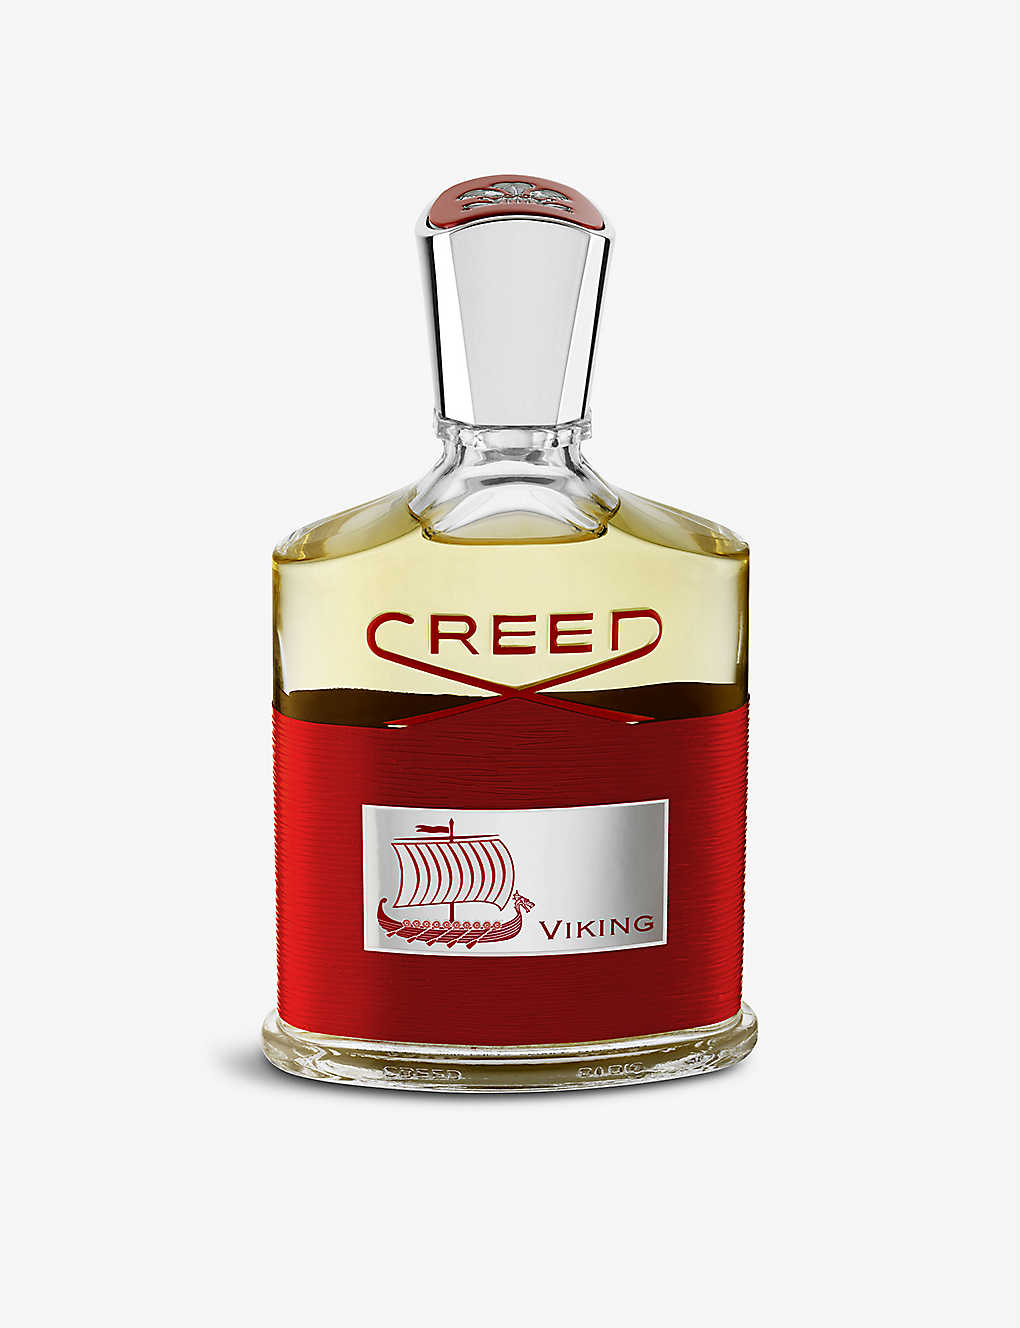 Creed Viking Eau De Parfum Selfridgescom